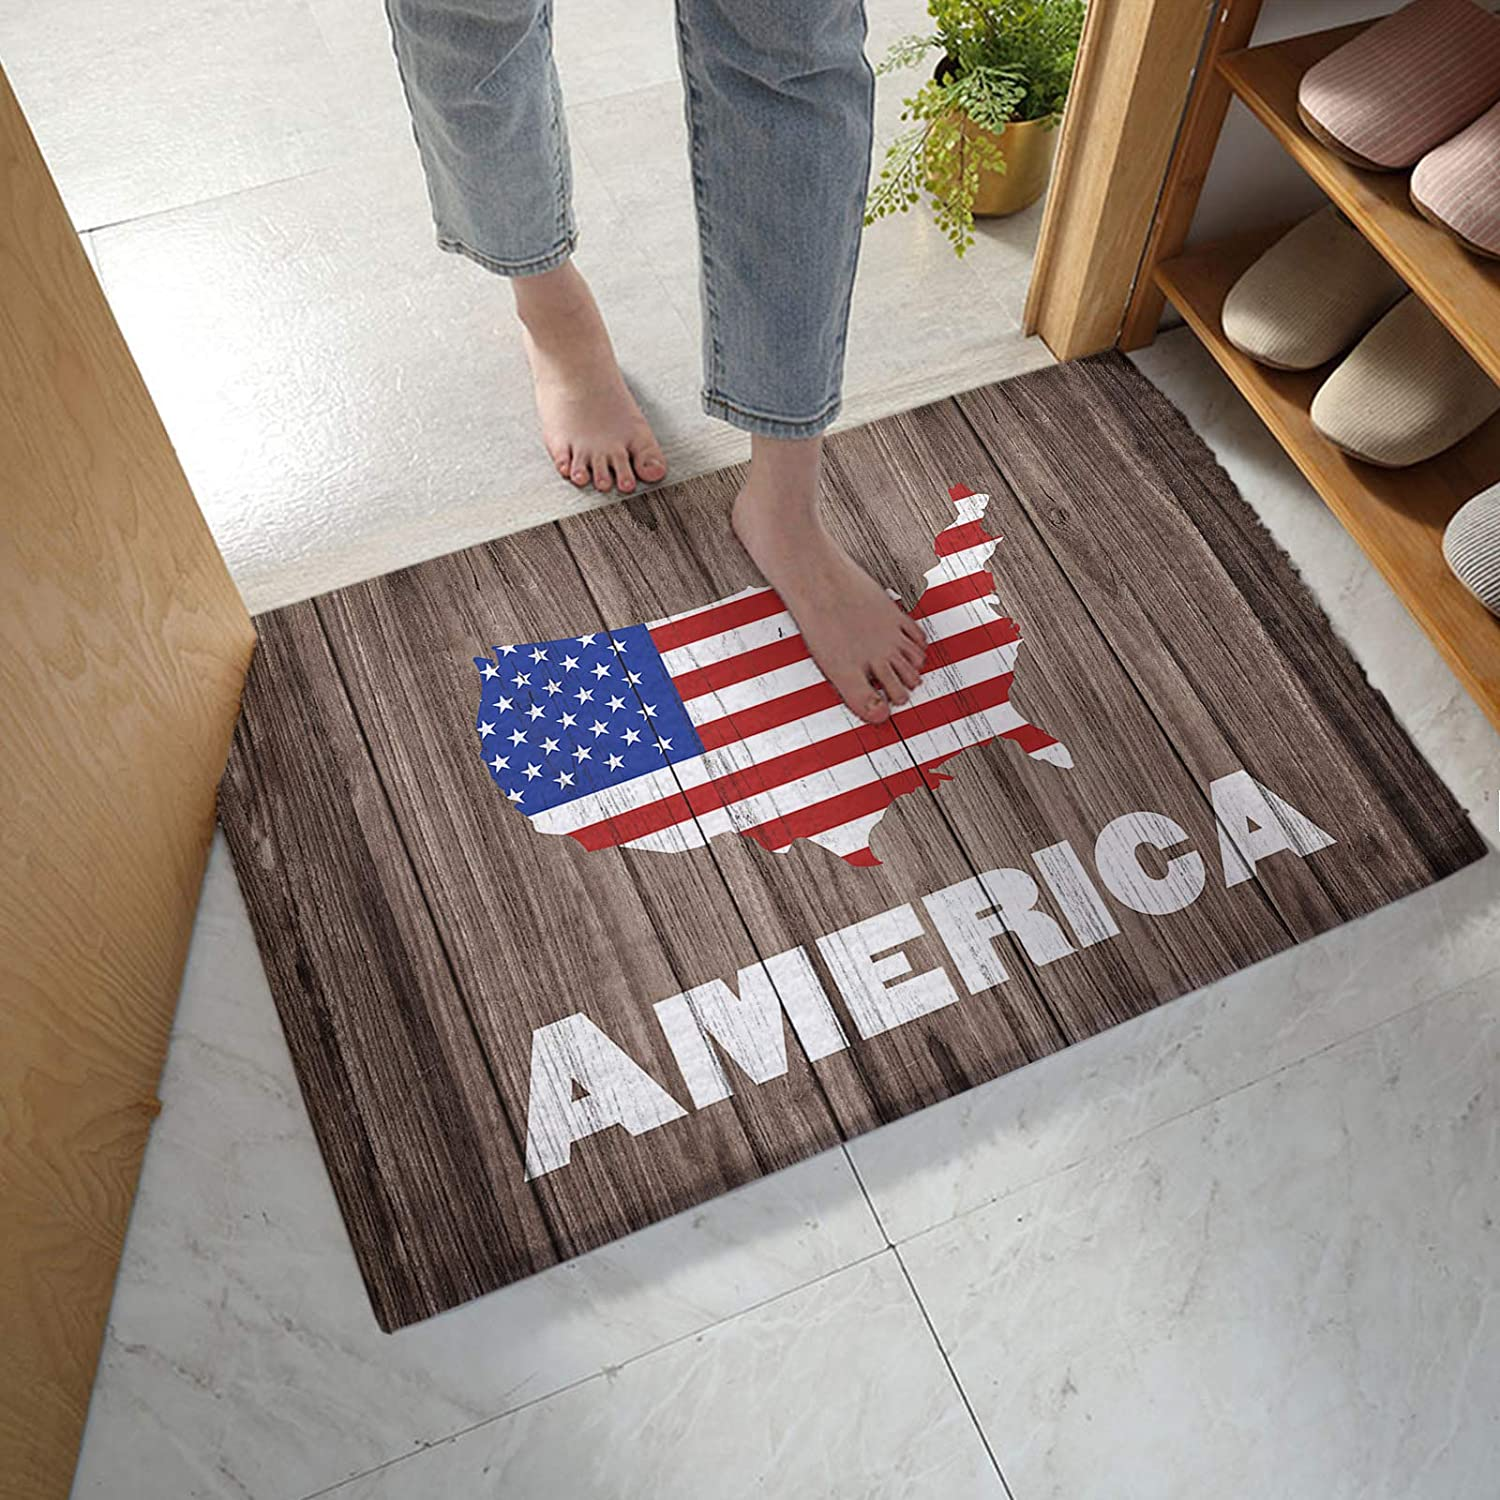 Bathroom Spring new work Rug Bath Mat Independence Day American Maps Vintage Super-cheap On